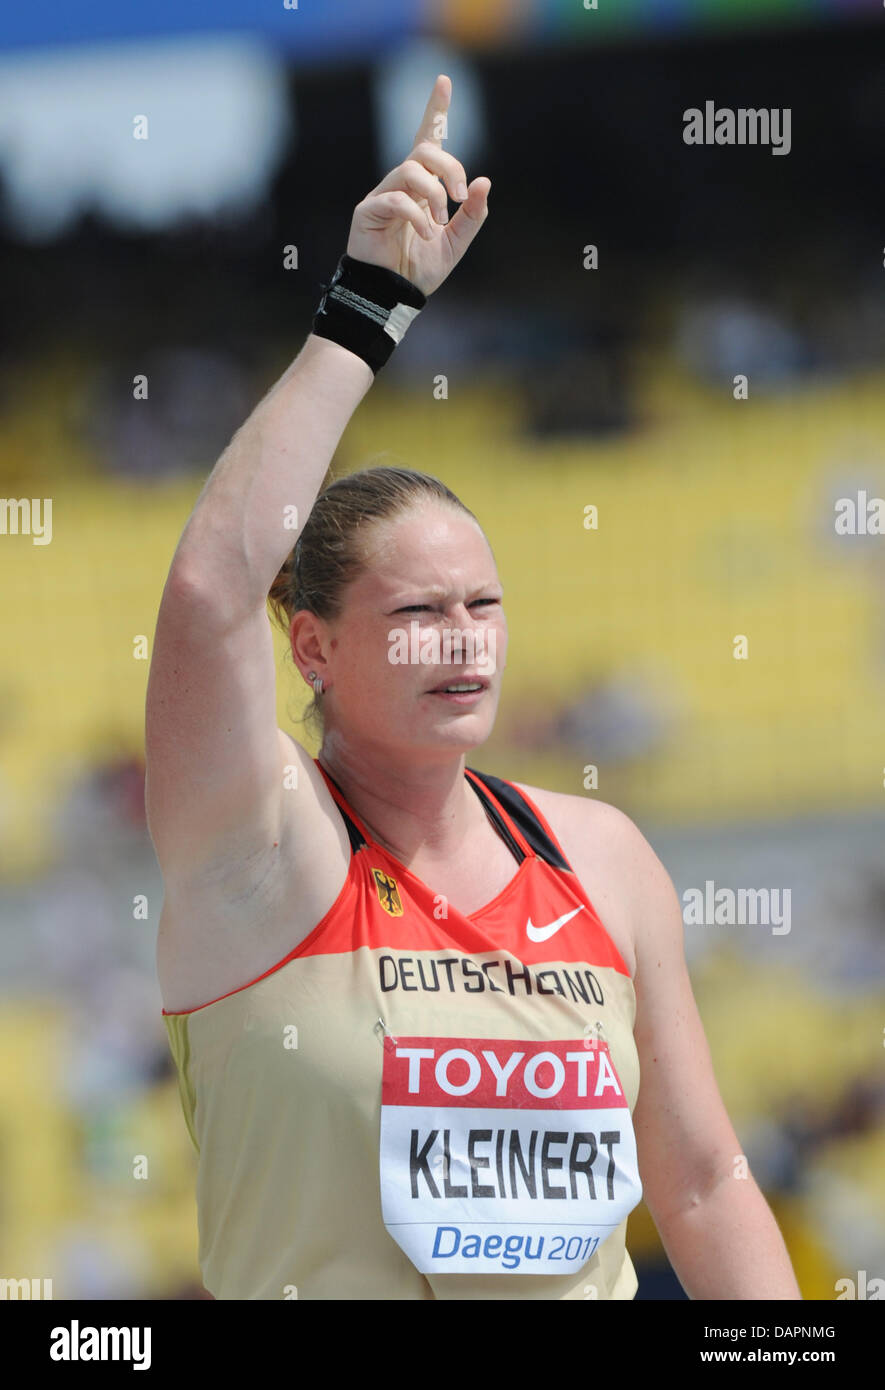 Nadine Kleinert of Germany reacts in the Women's Shot Put Qualification at the 13th IAAF World Championships - Stock Image